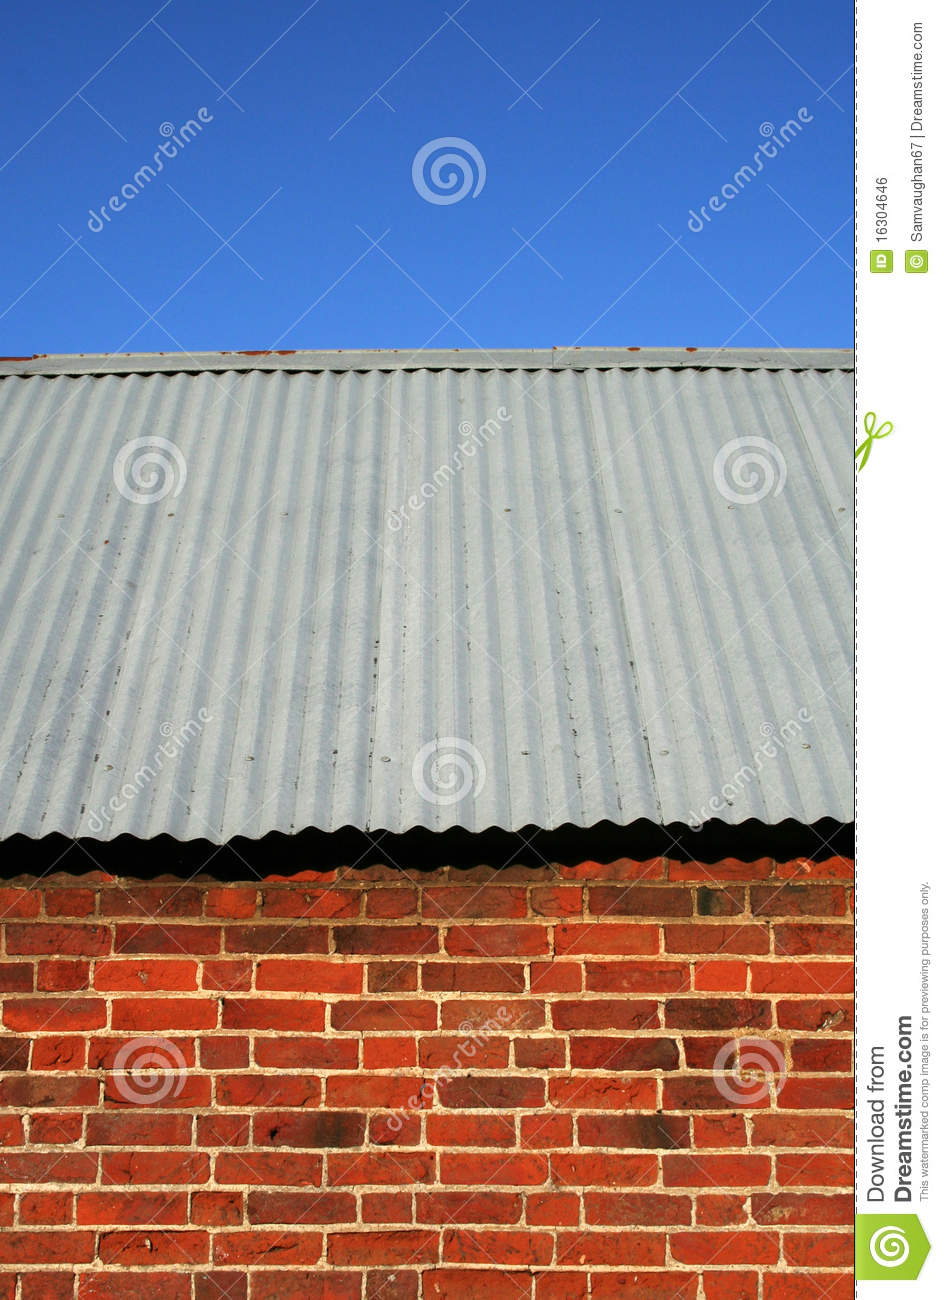 Red Brick Barn With Corrugated Iron Roof Stock Photo